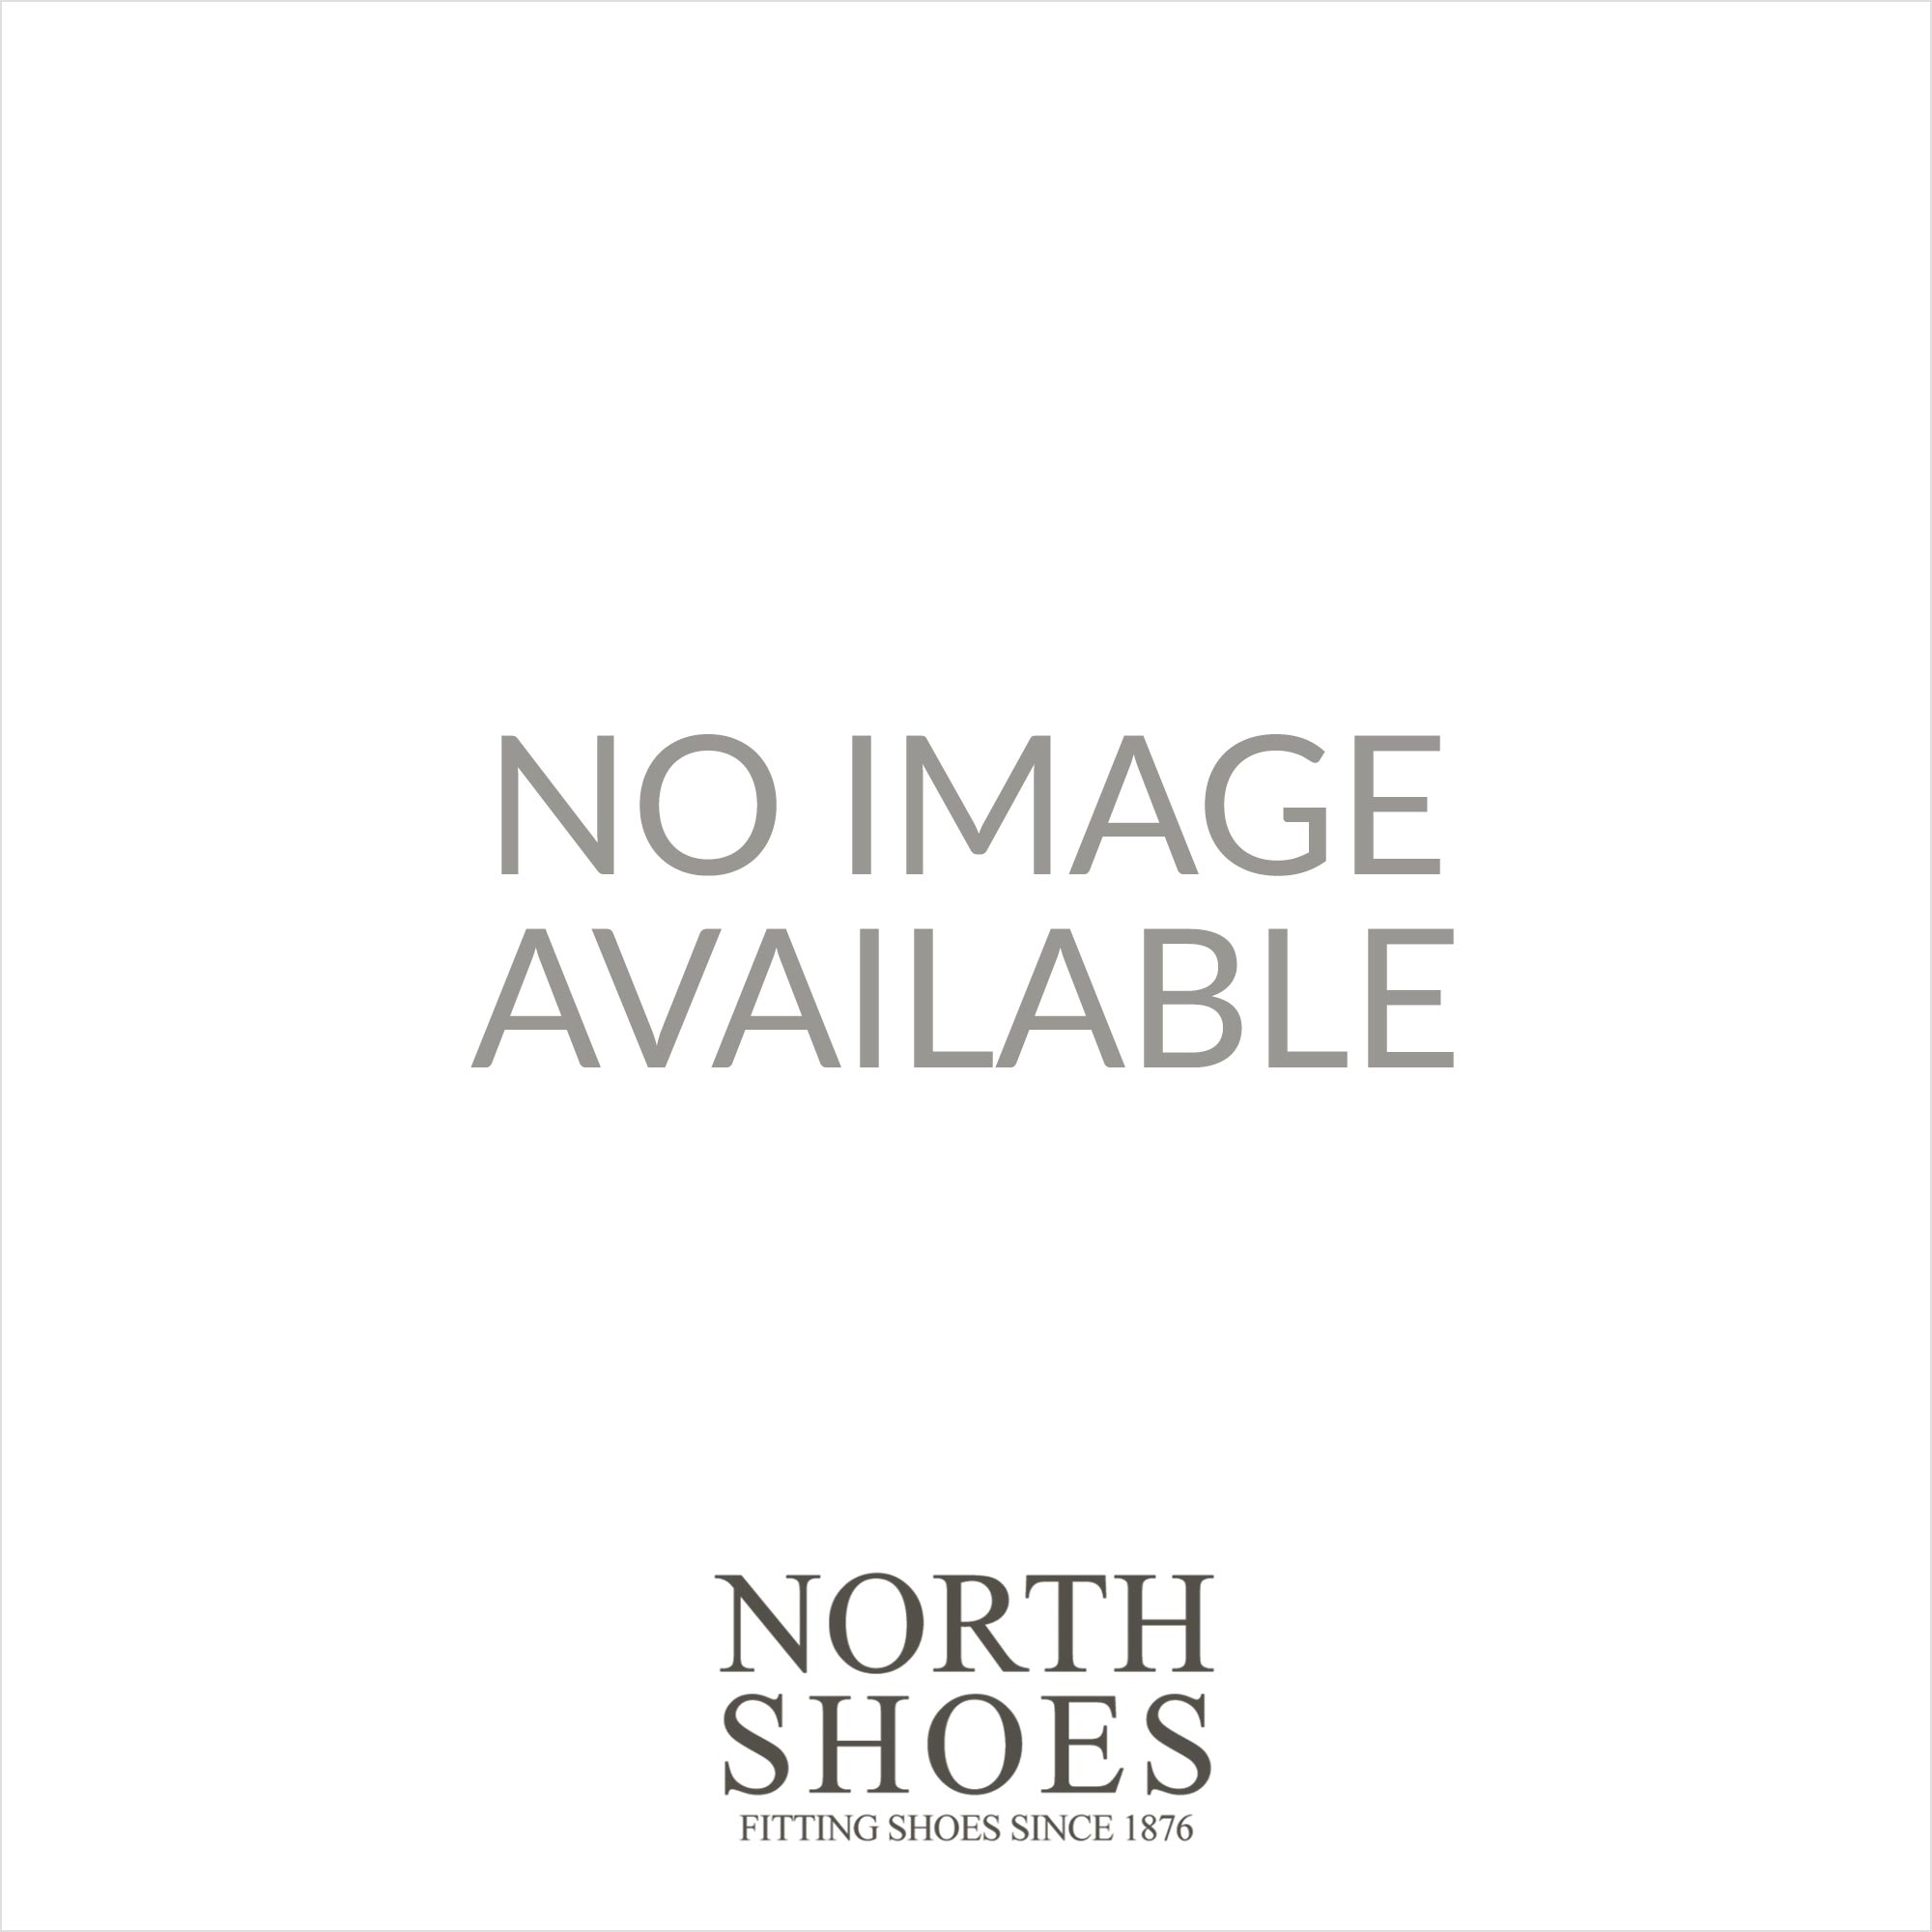 7b9d923786e Clarks Amali Ella Black Suede Leather Womens Stiletto Heel Strappy Sandal -  Clarks from North Shoes UK